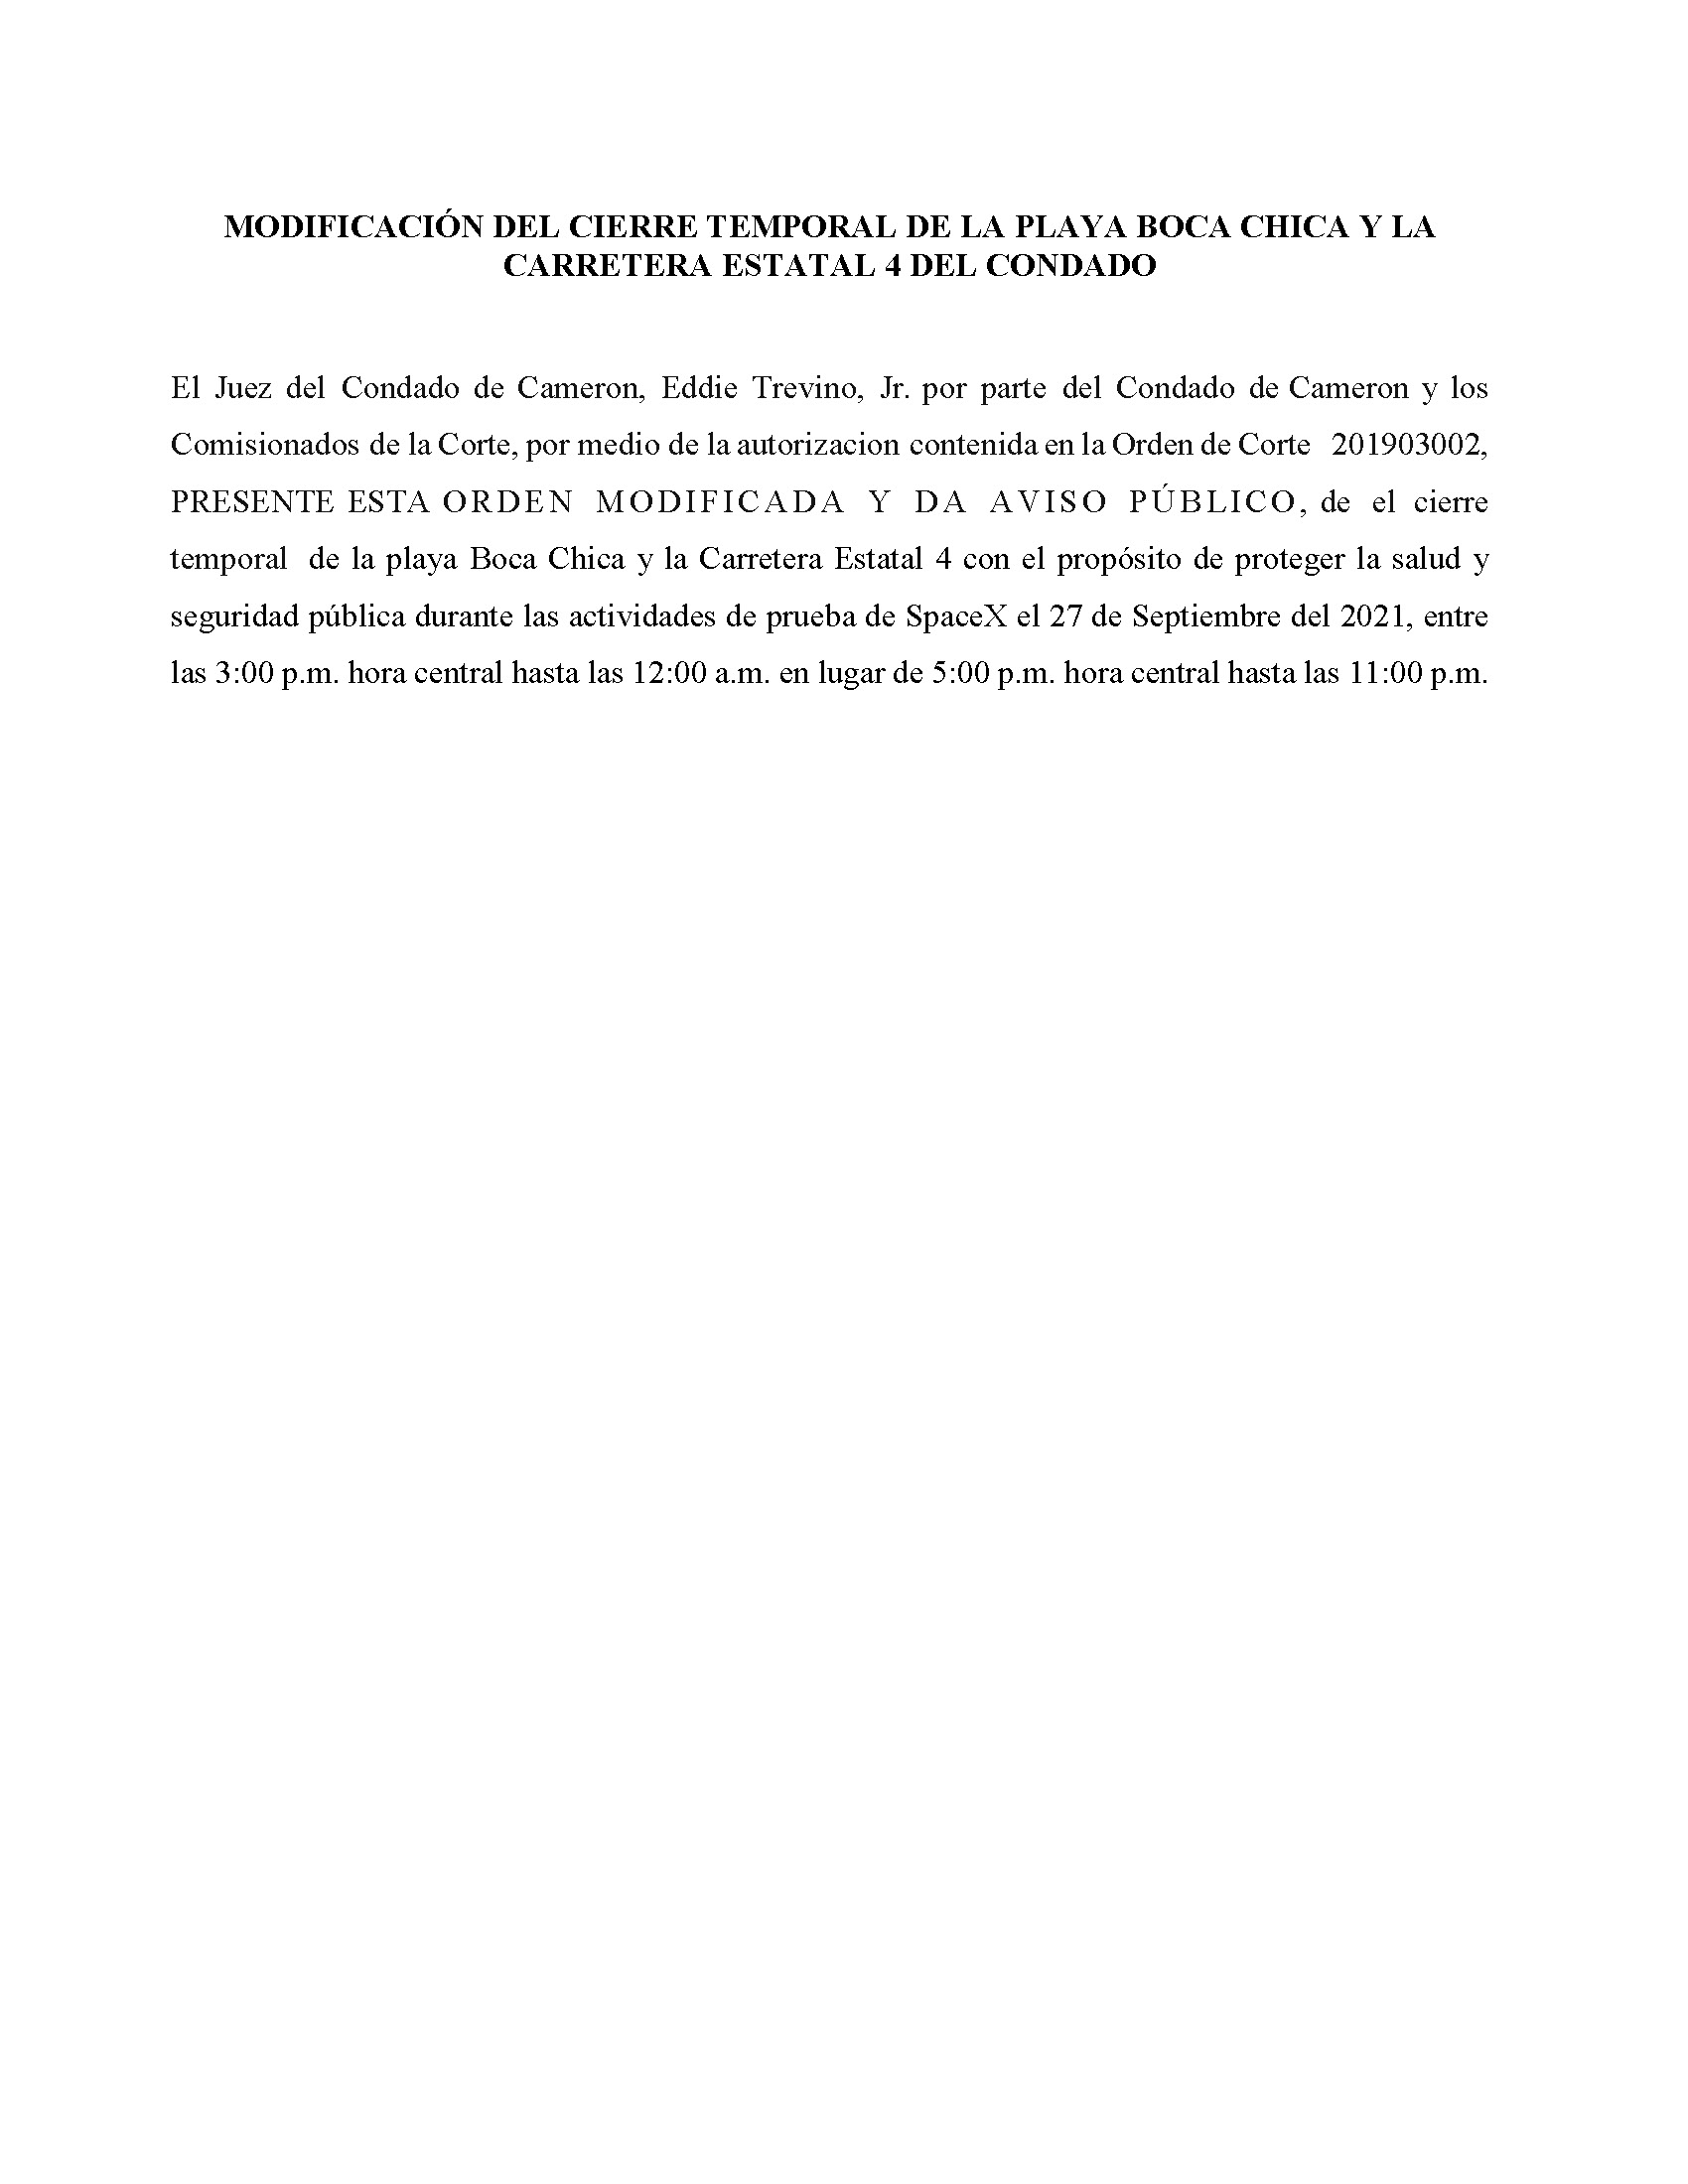 Amended Order In Spanish.09.27.2021